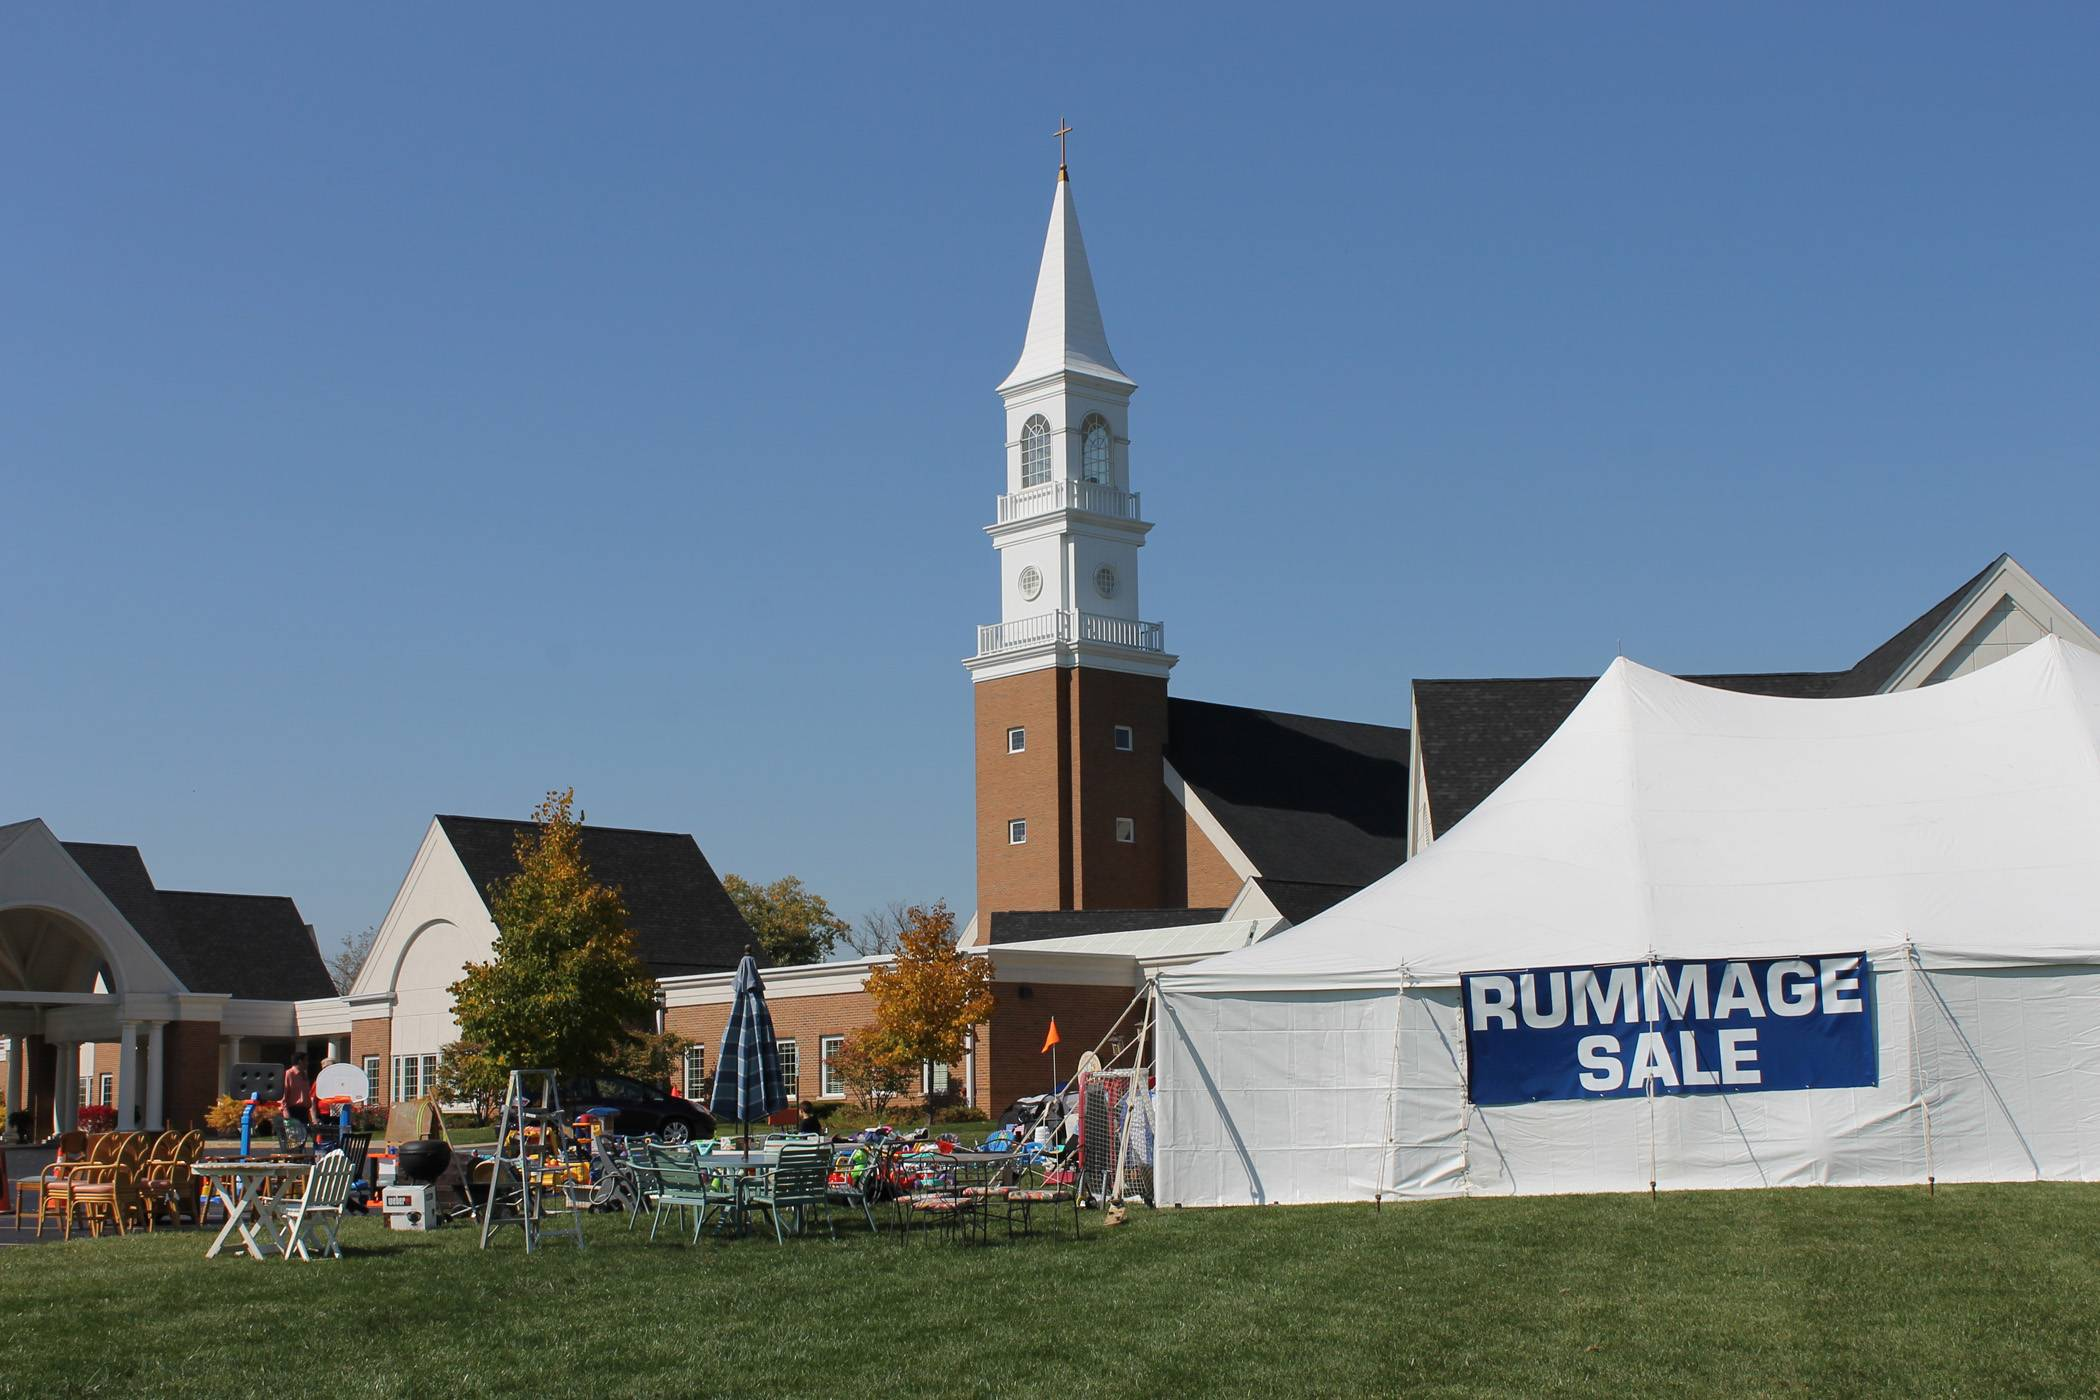 Treasures of all kinds fill a wing of the church and spill out into a tent at the Annual Barrington United Methodist Church Rummage Sale on Oct. 3 and 4.Christine Streed